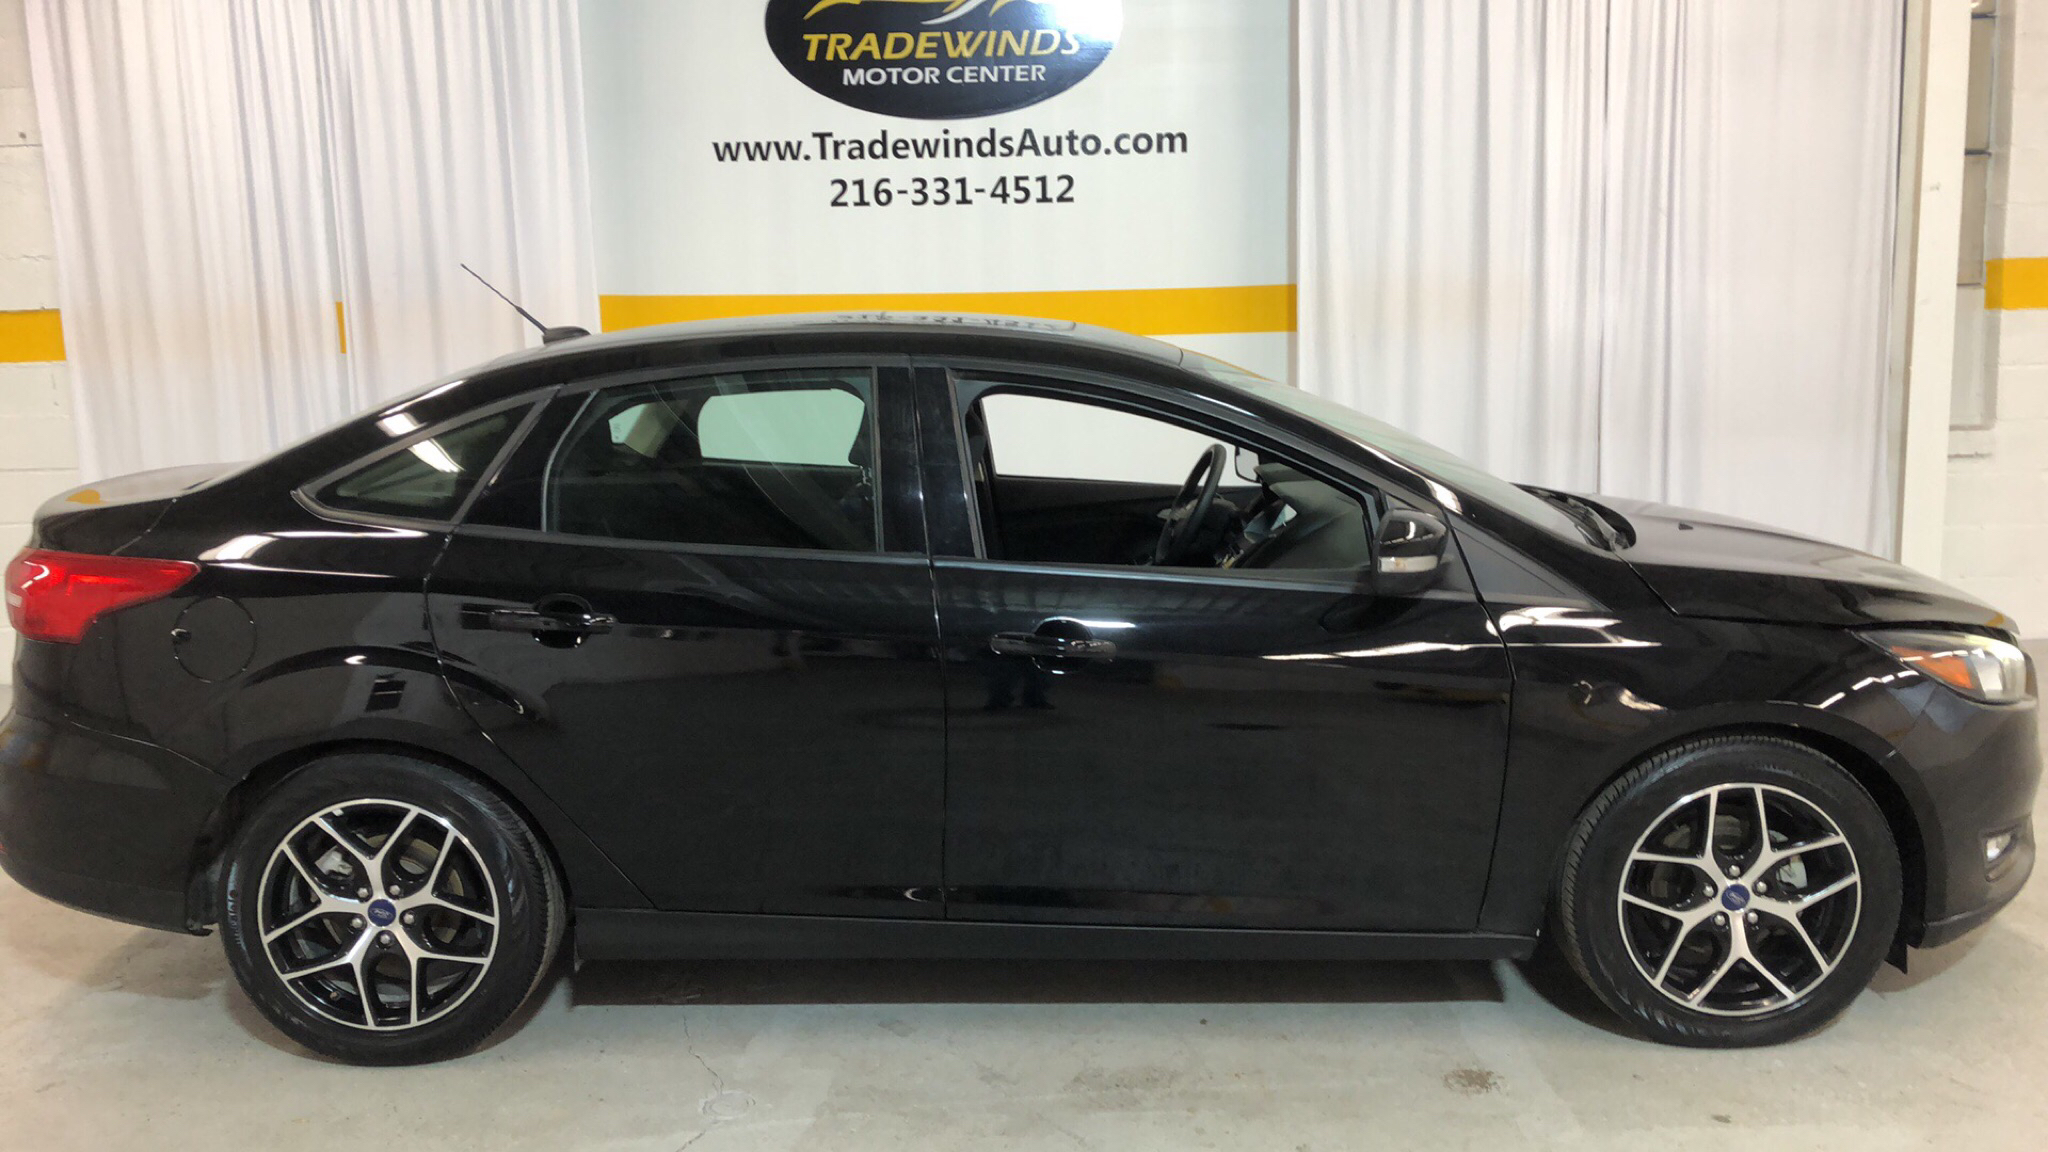 2017 FORD FOCUS SEL for sale at Tradewinds Motor Center